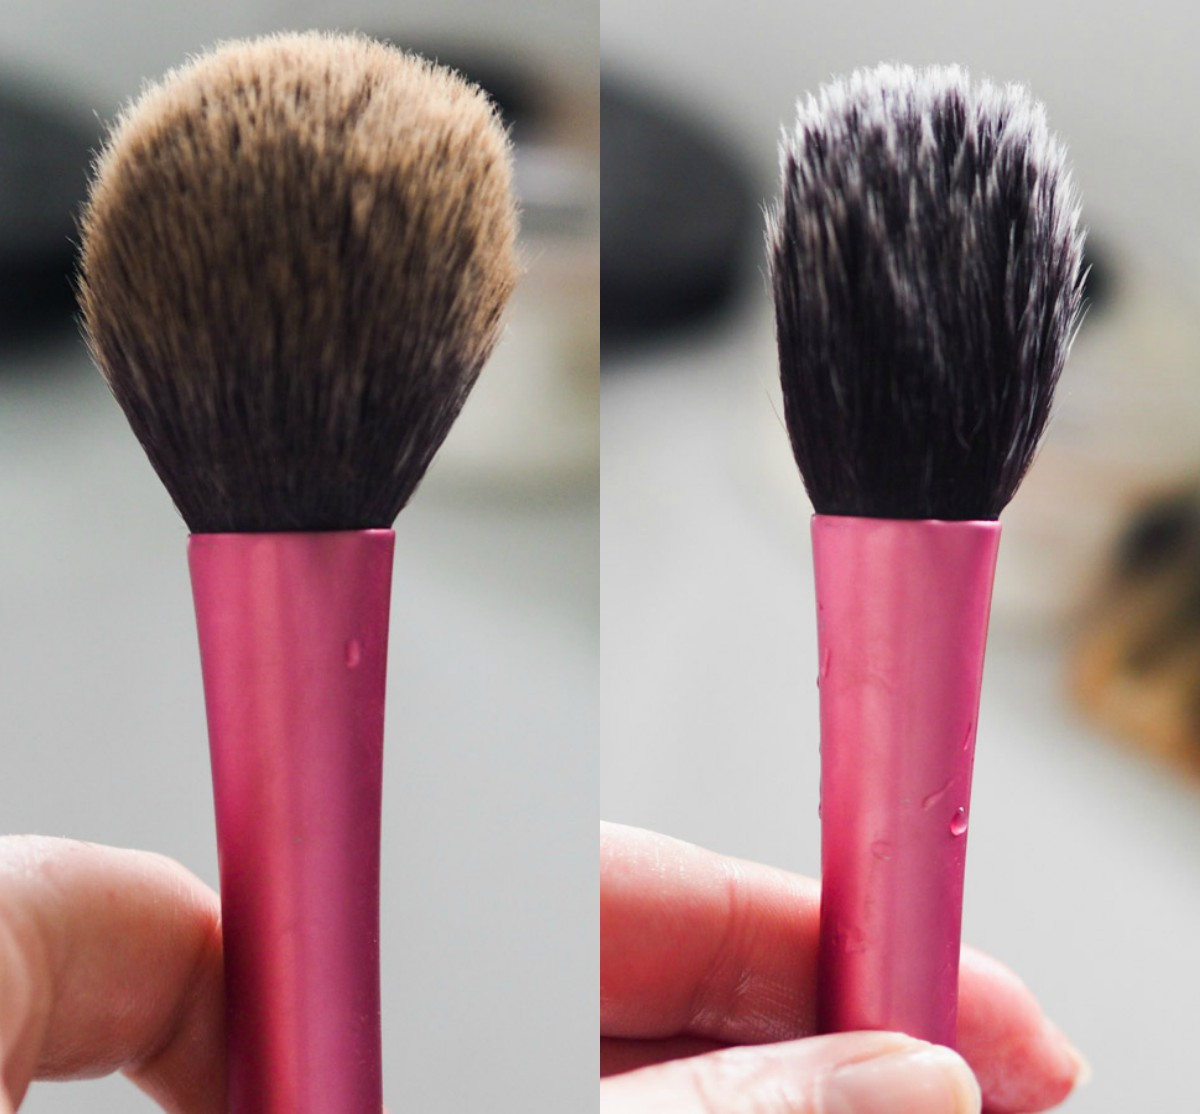 Violet Voss Brush Soap review